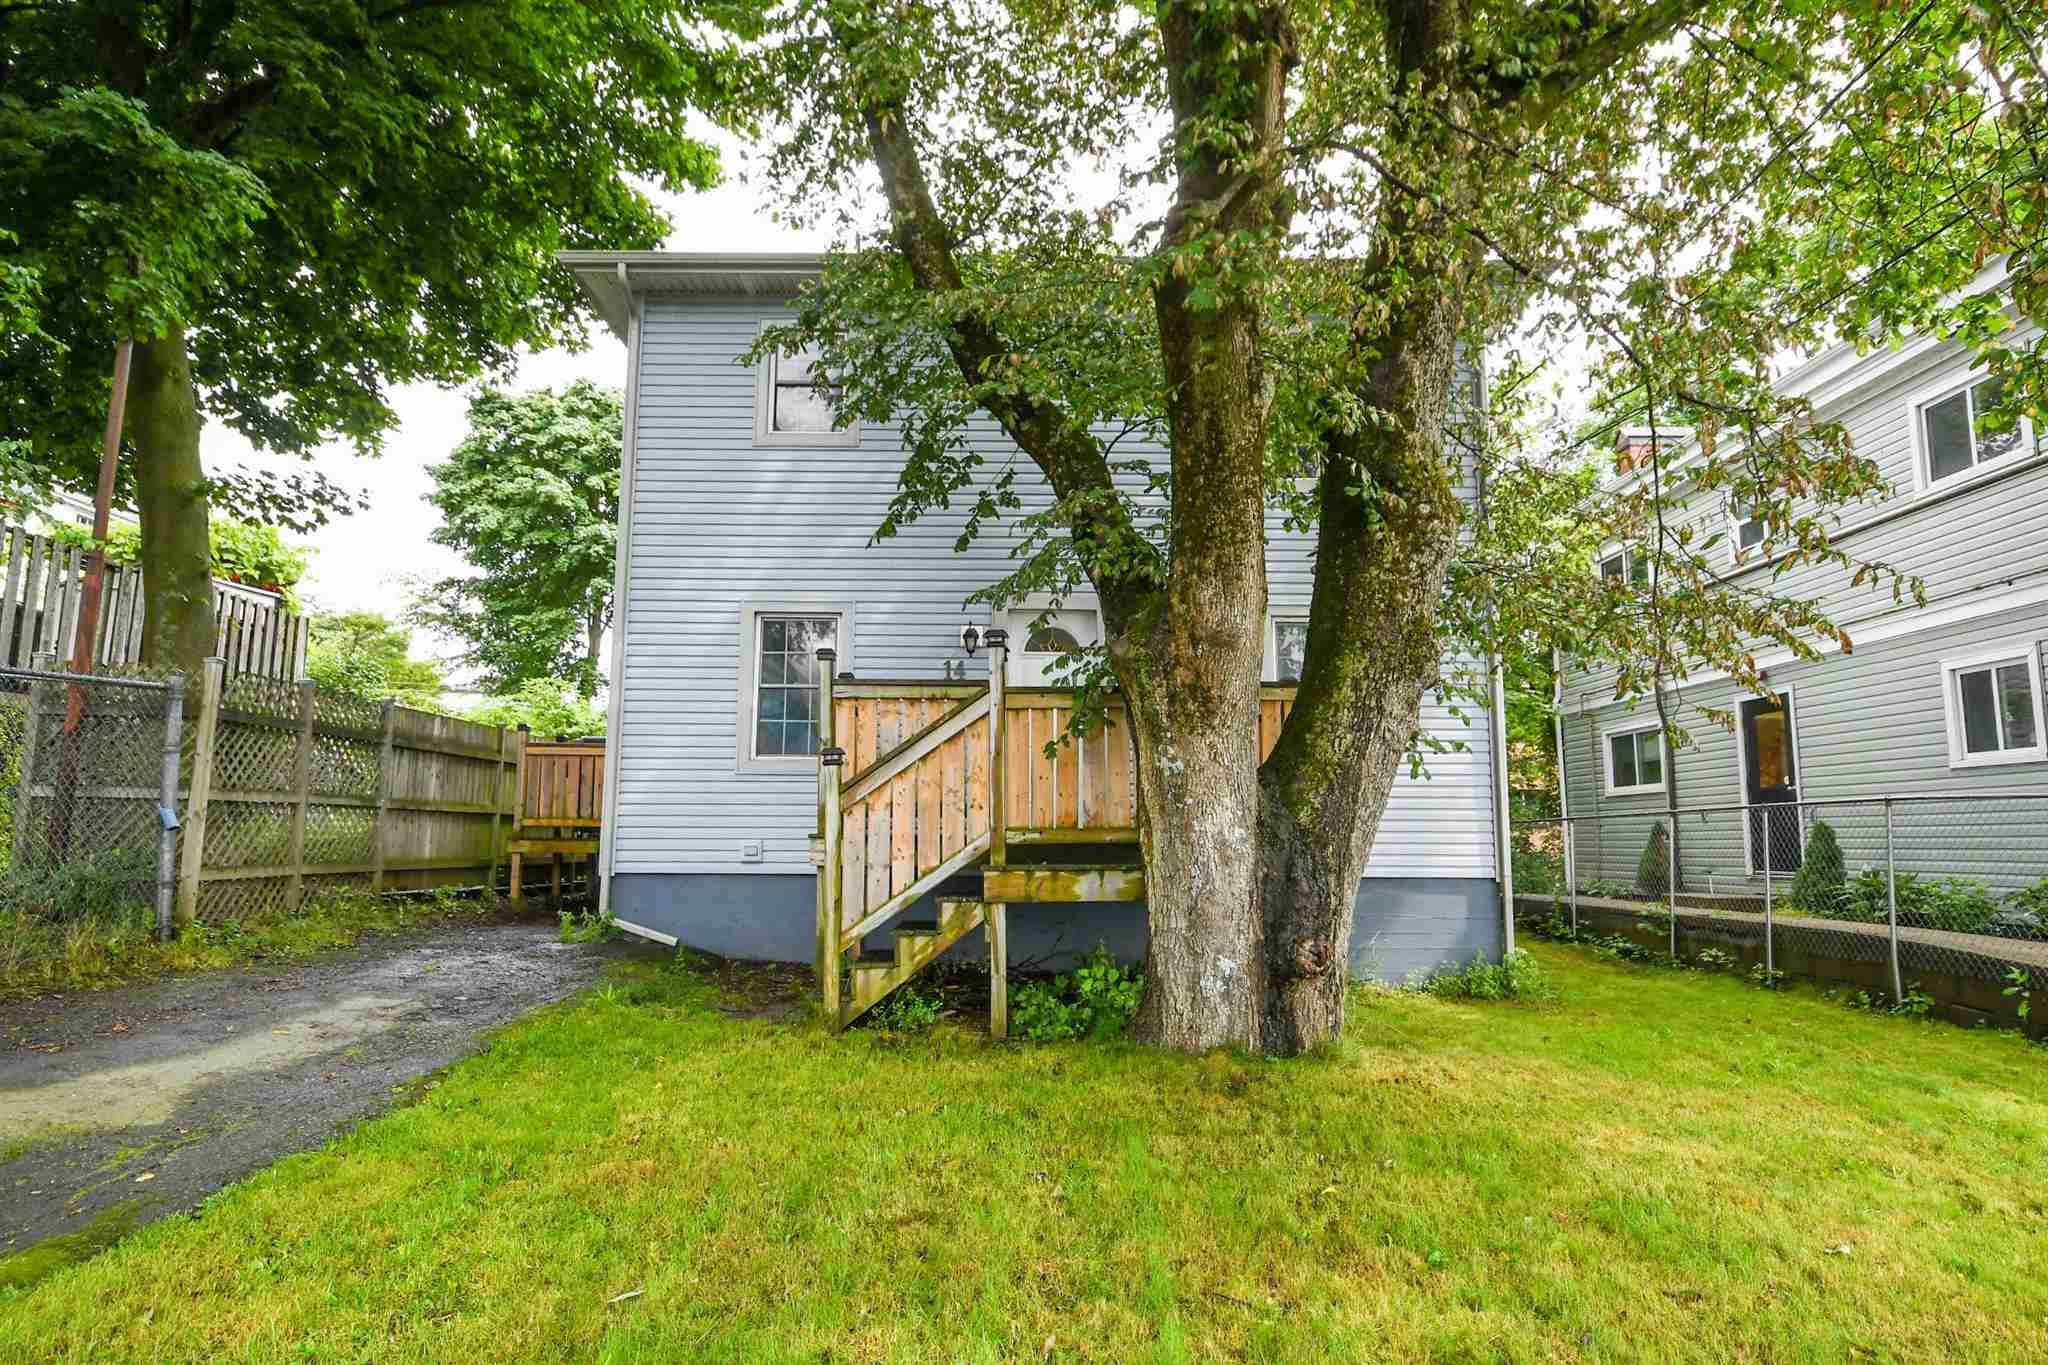 Main Photo: 14 Grove Street in Dartmouth: 10-Dartmouth Downtown To Burnside Residential for sale (Halifax-Dartmouth)  : MLS®# 202118544